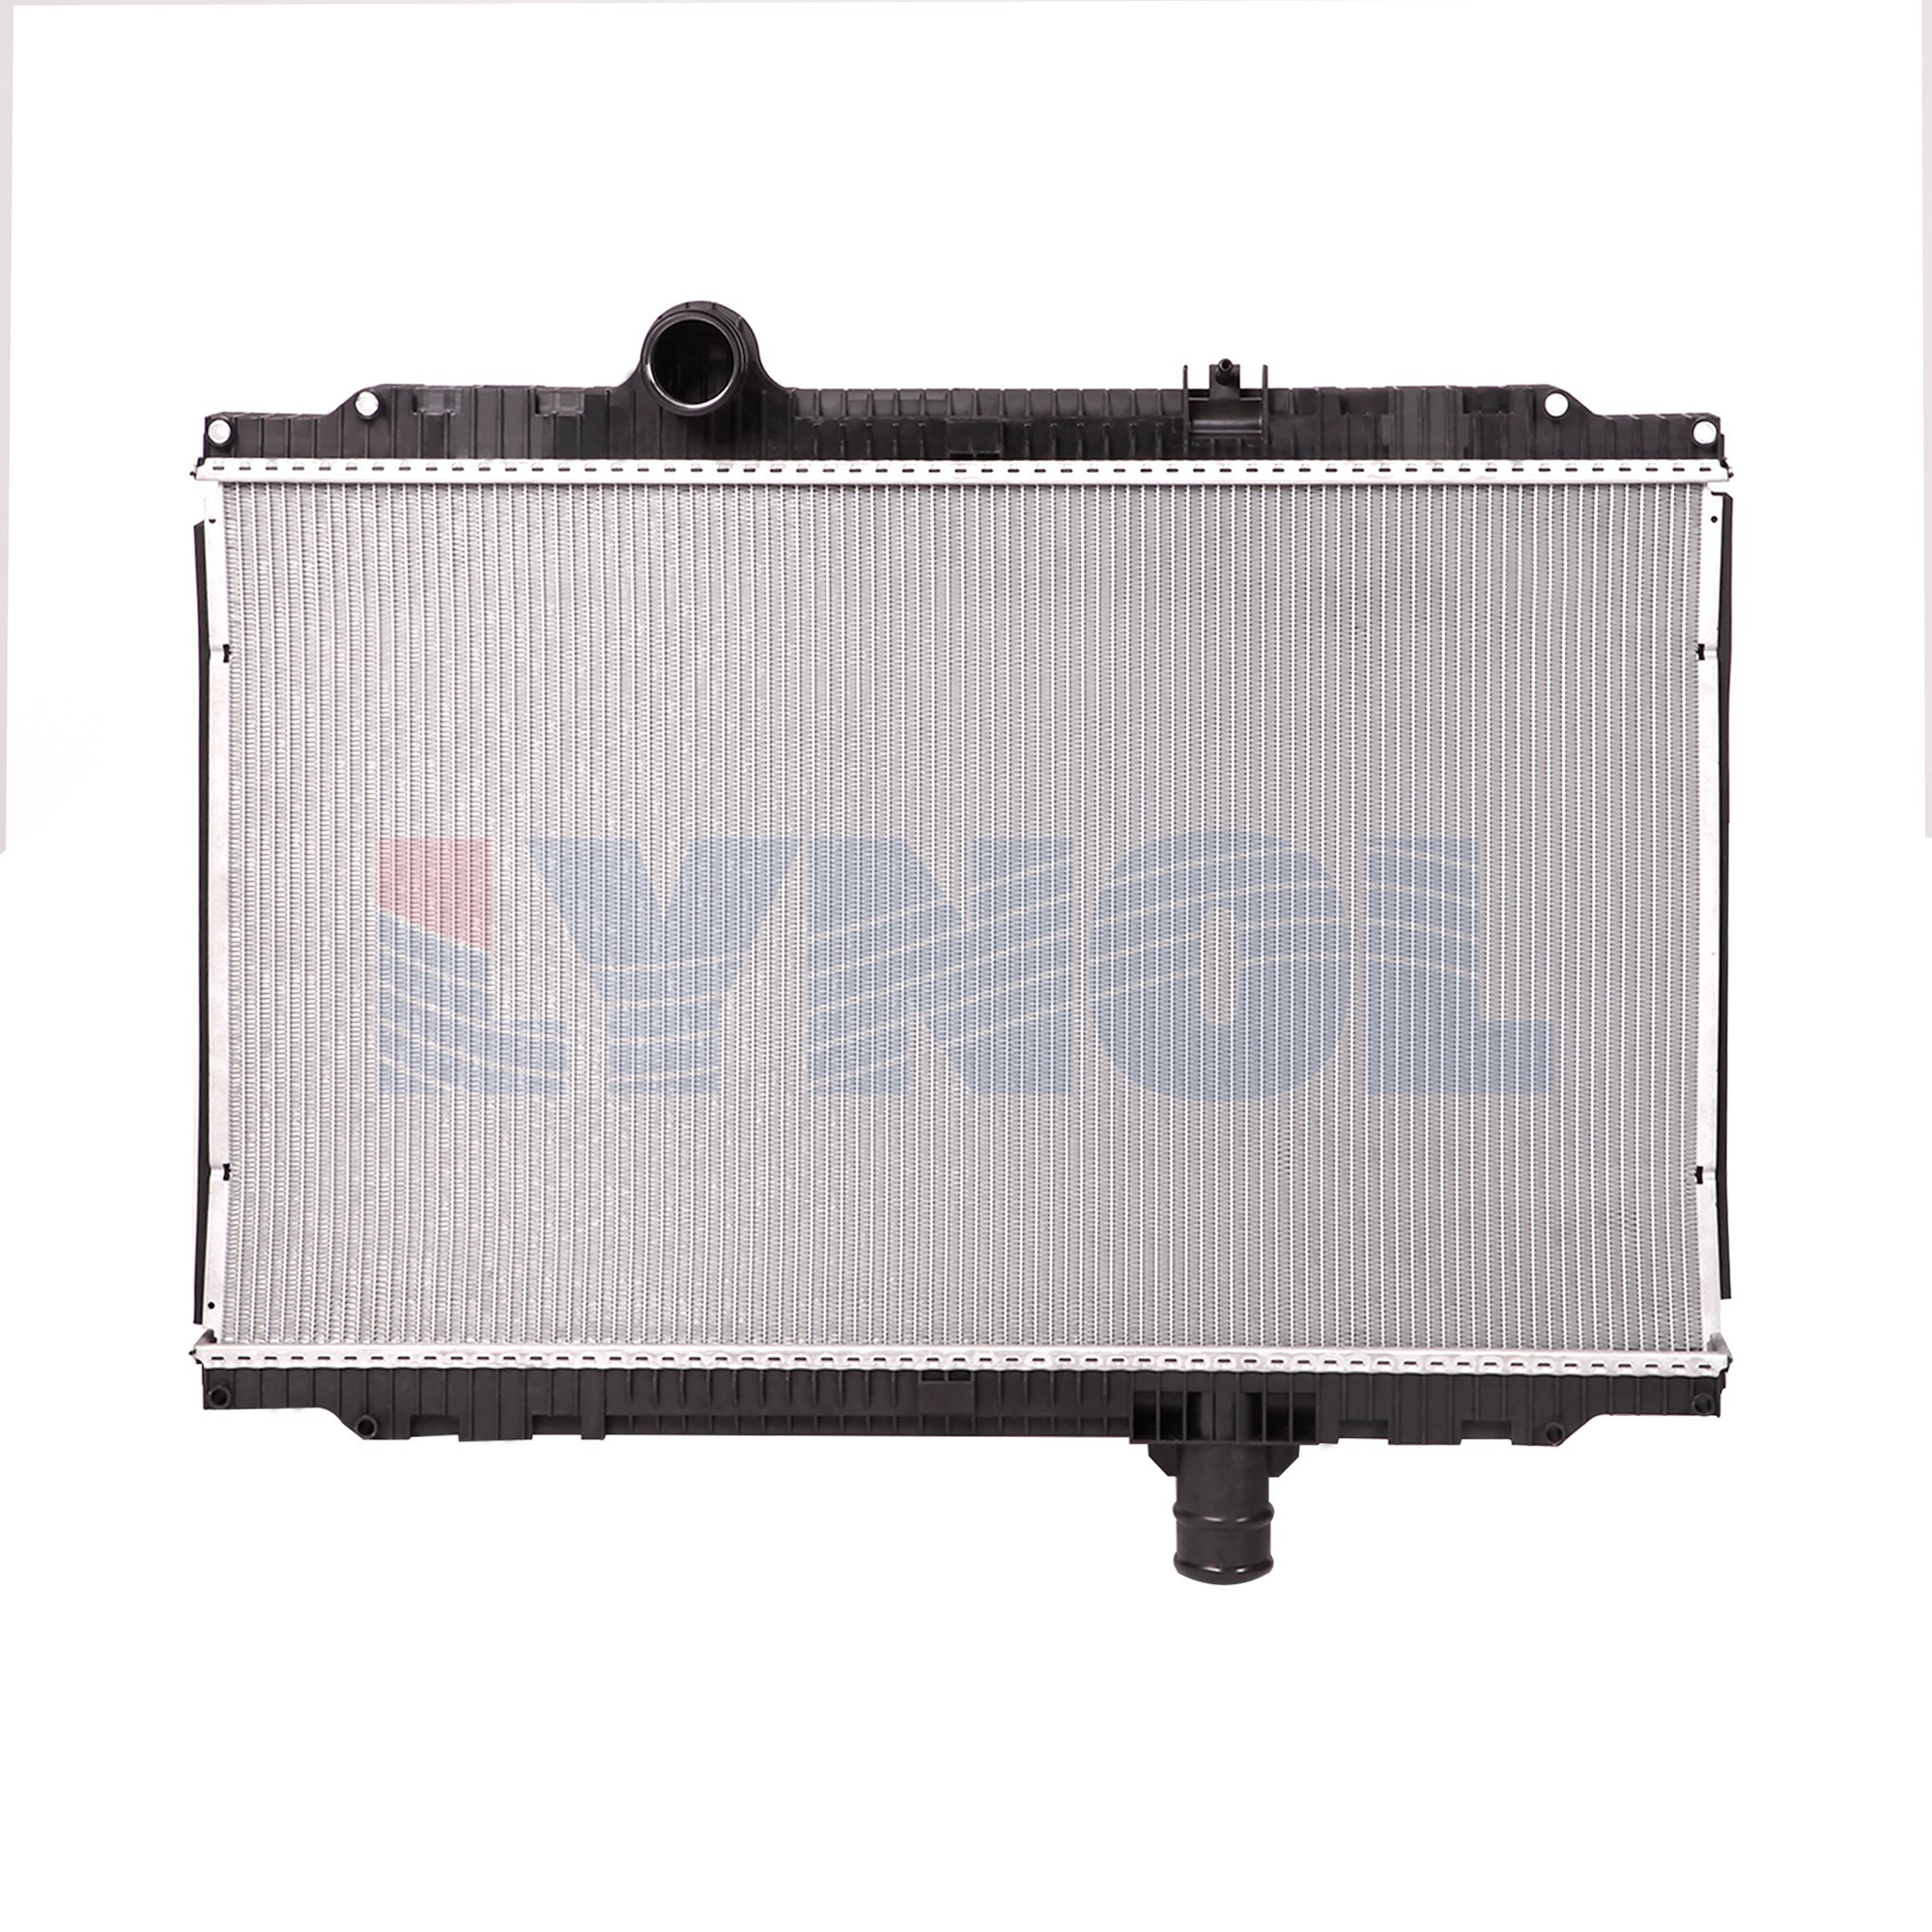 2205-006 - Kenworth / Peterbilt Radiator